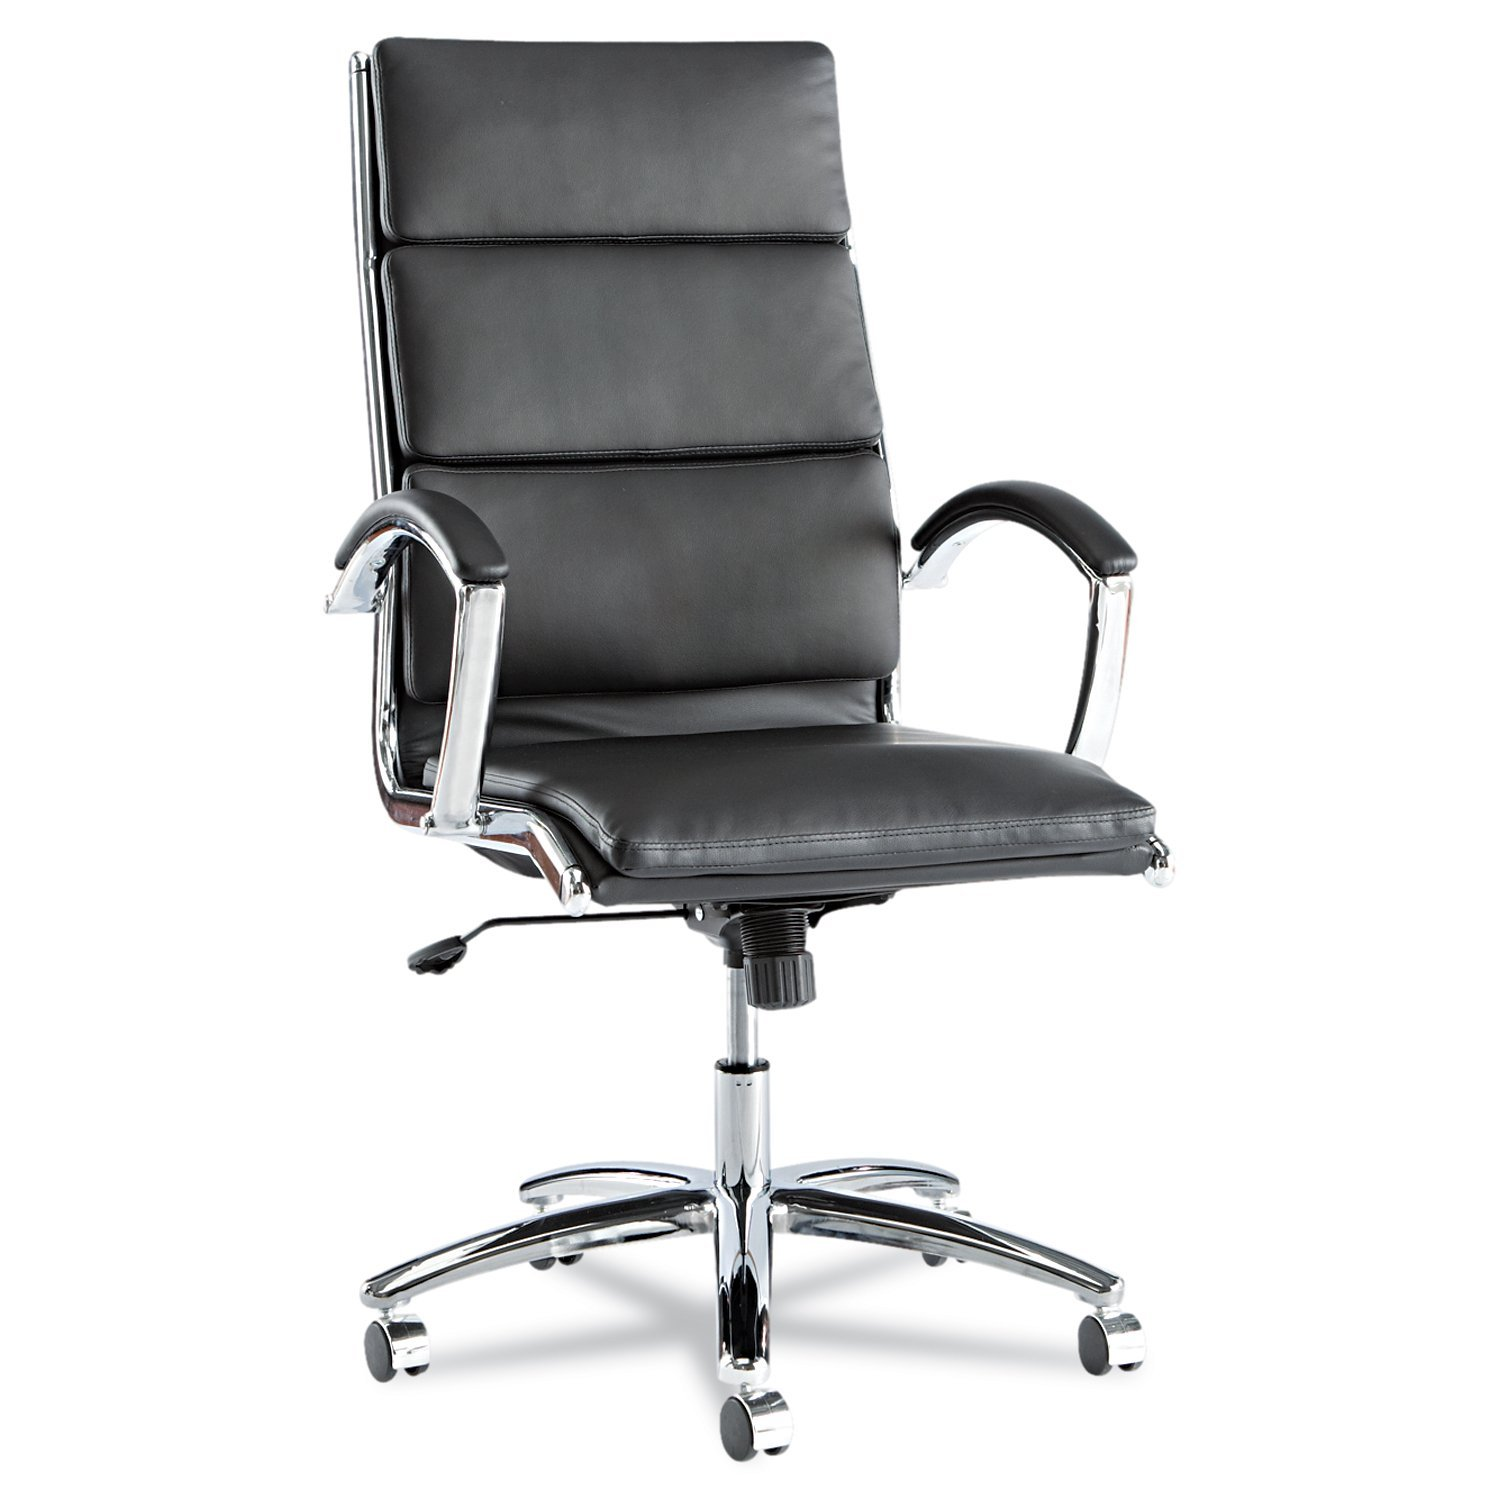 Alera Neratoli High-Back Swivel-Tilt Chair - Black Soft-Touch Leather